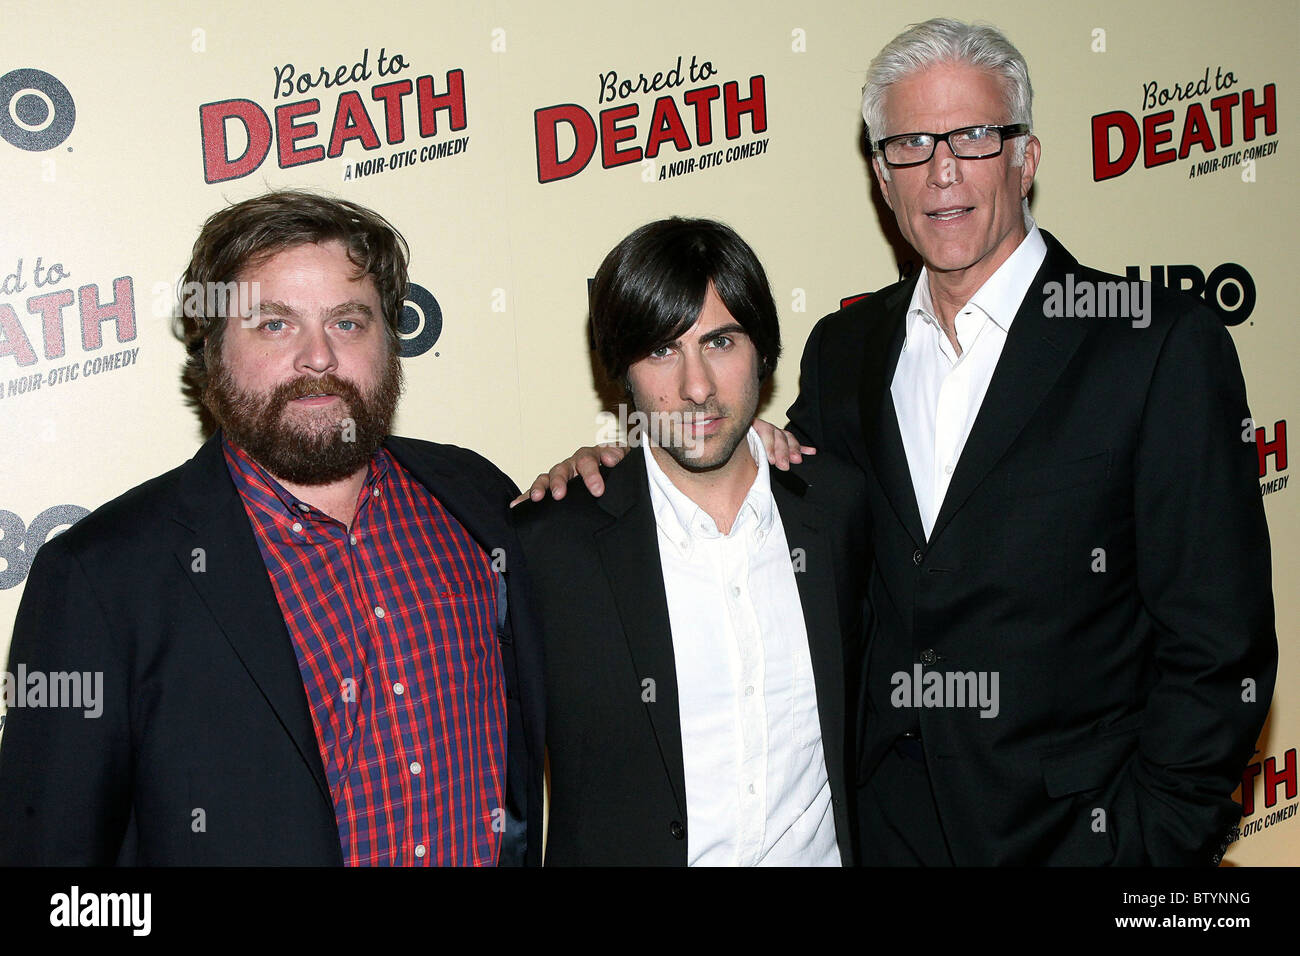 Ted Danson And Zach Galifianakis High Resolution Stock Photography And Images Alamy